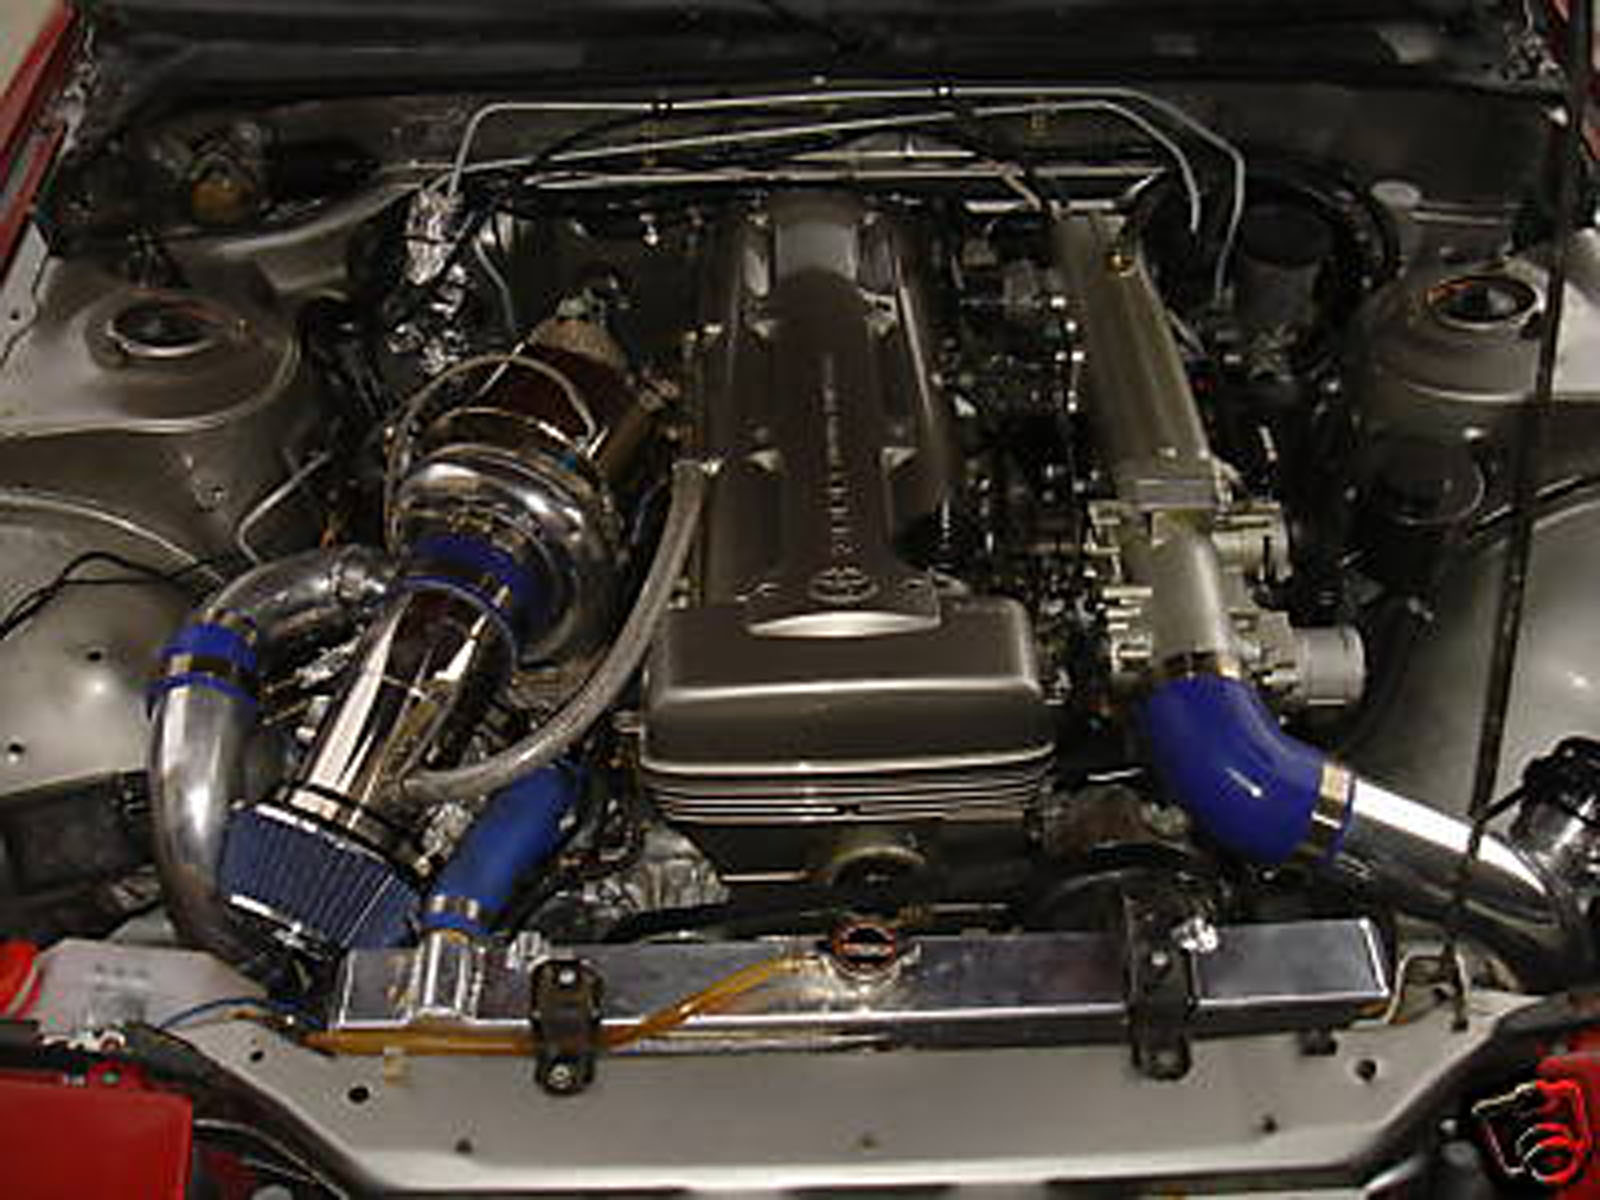 Nissan 240sx 2jz engine nissan free engine image for for Nissan 240sx motor for sale